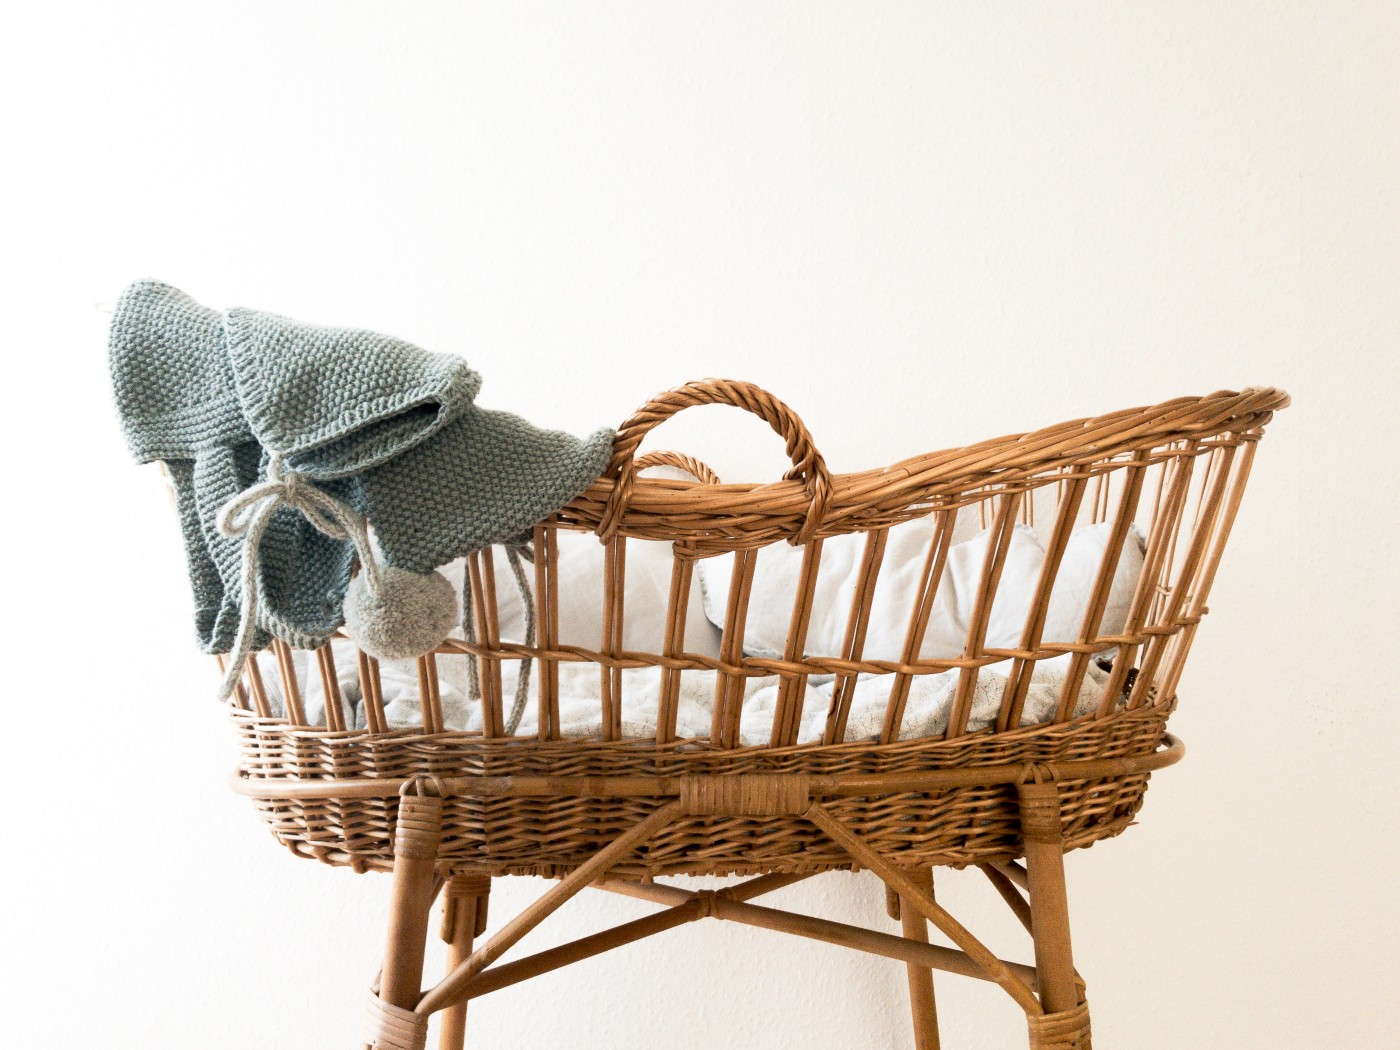 straw bassonet for a baby with a blue blanket